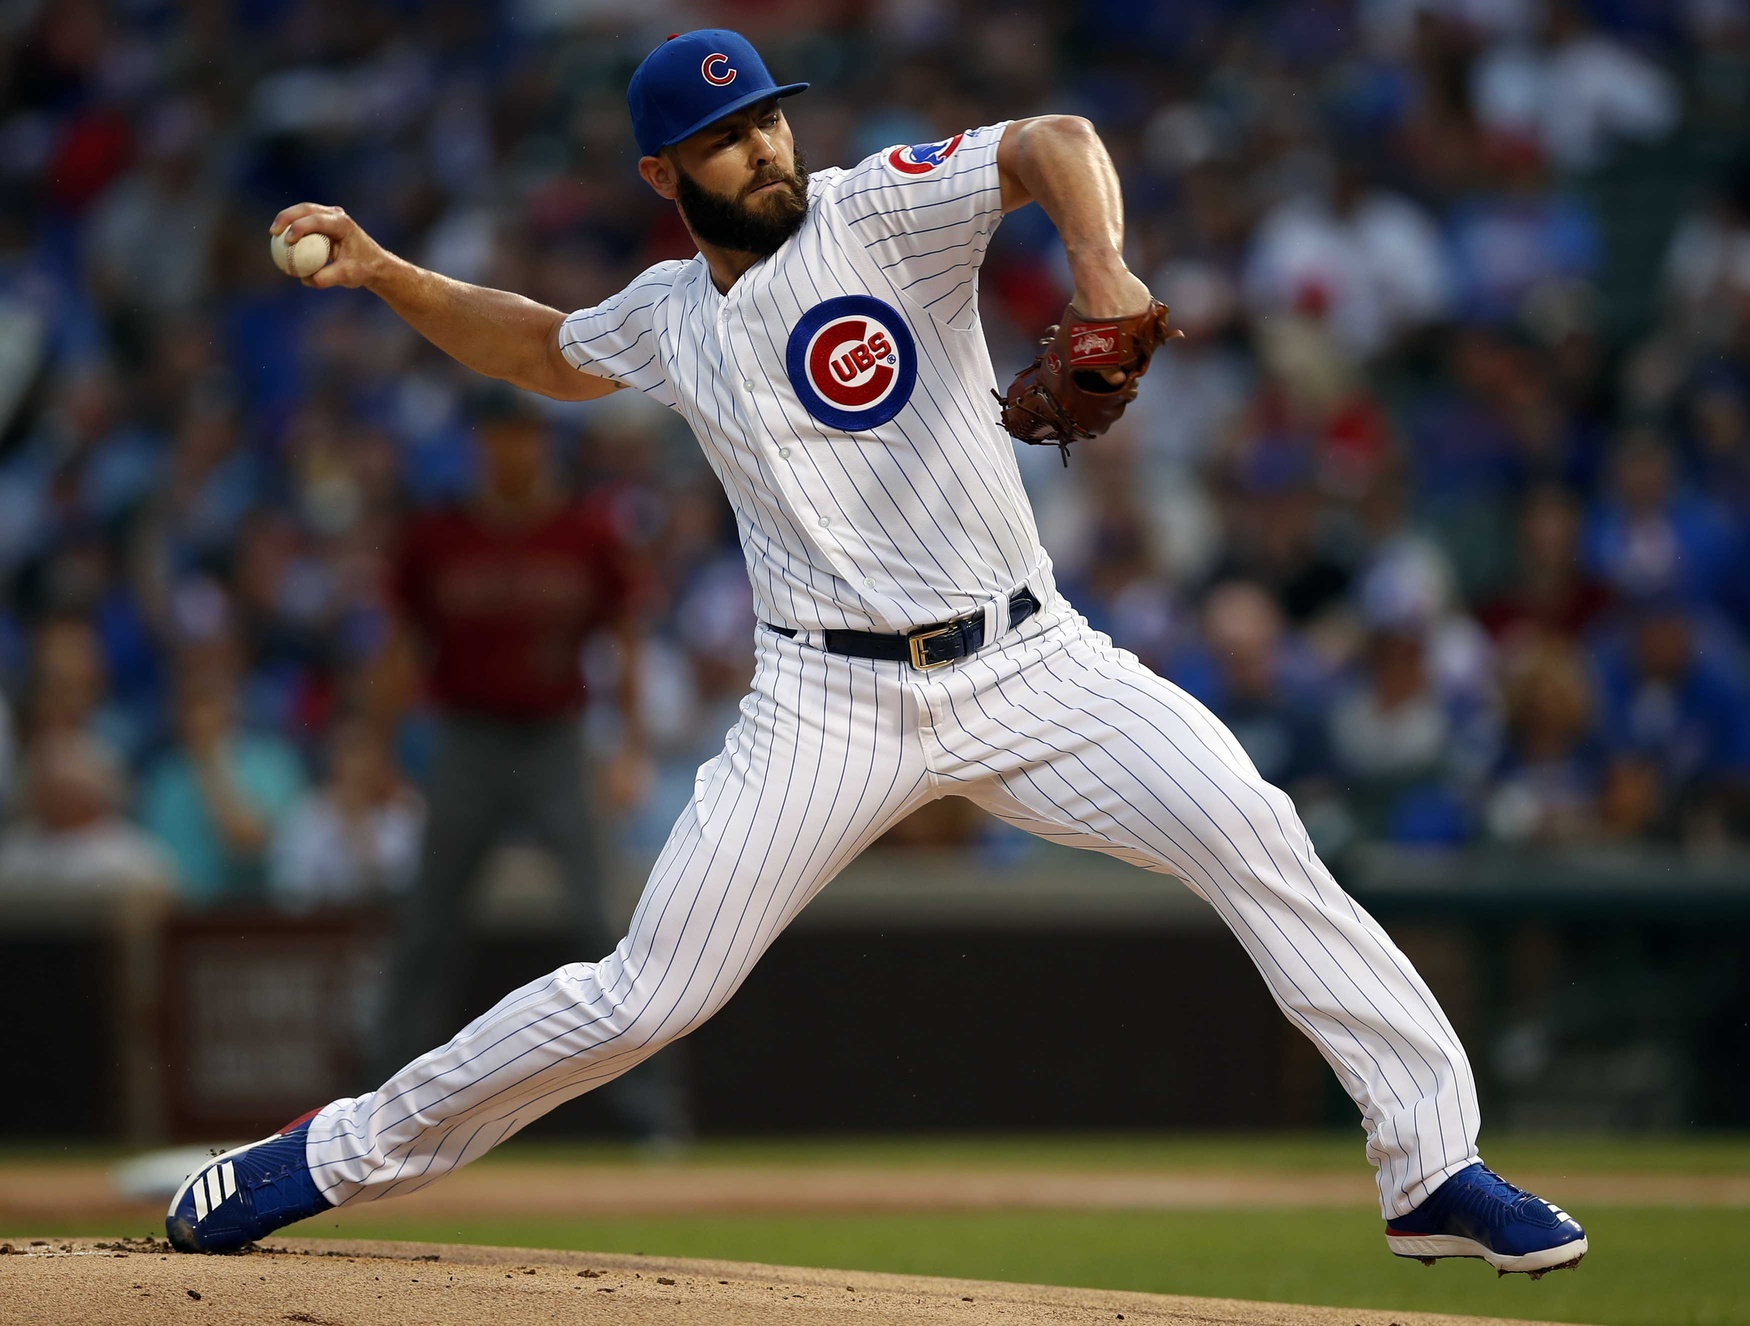 Does the Wilson/Avila trade make the Cubs make World Series favorites?